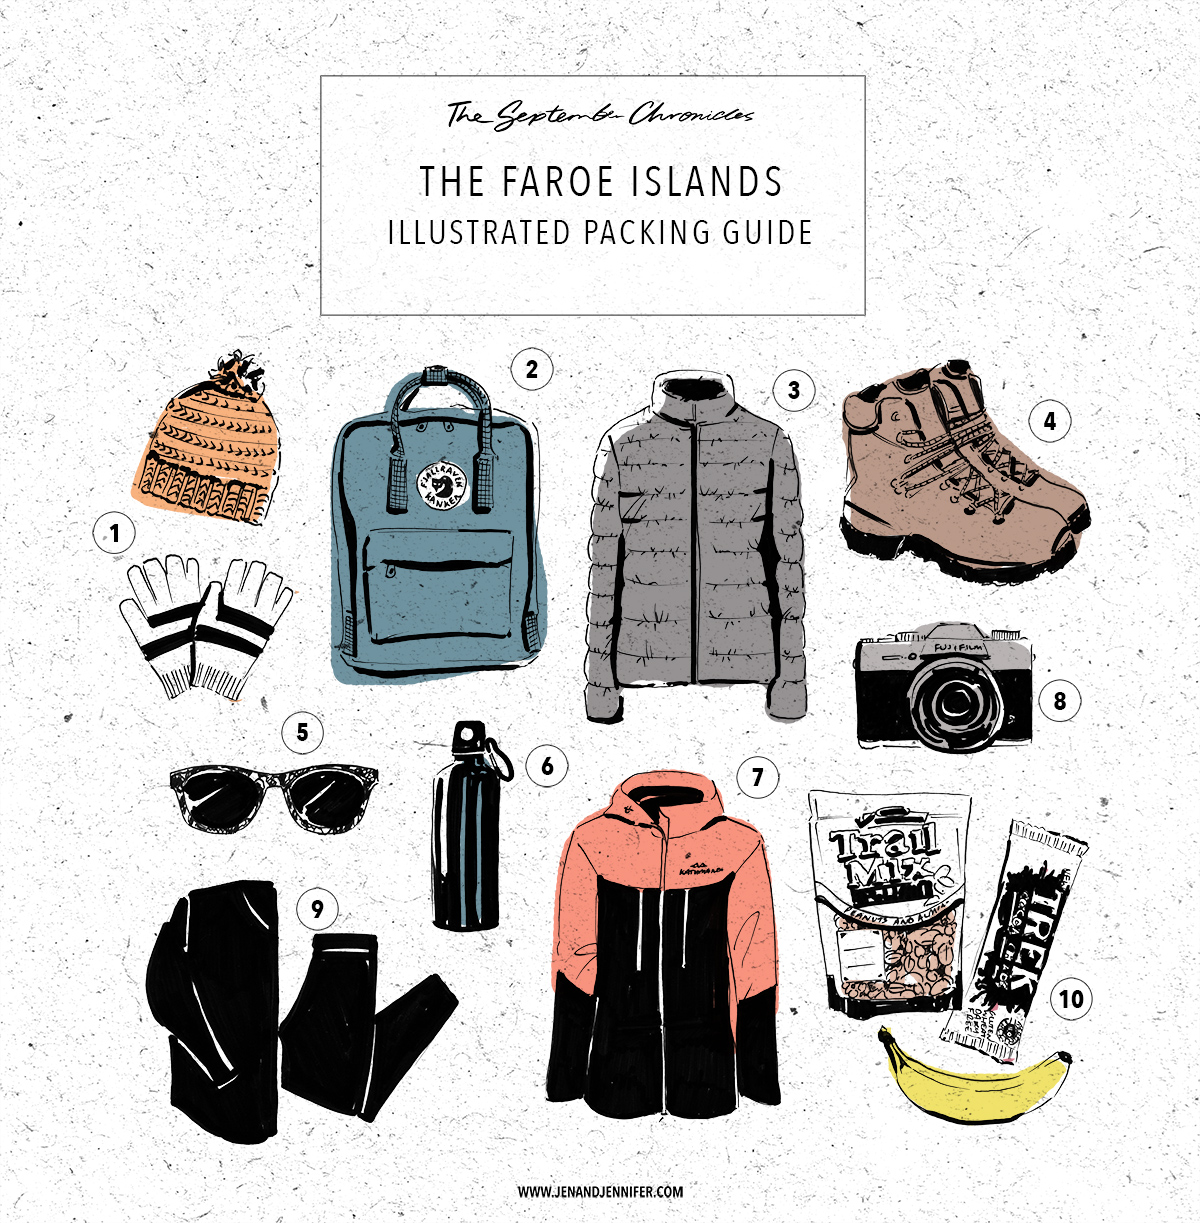 (1) Warm hat and Gloves (2) Backpack (3) Warm layers (4) Comfortable, waterproof walking boots (5) Sunglasses (6) Refillable Water bottle (7) Windproof and Waterproof Jacket (8) Camera (9)Thermal layers (10) Snacks